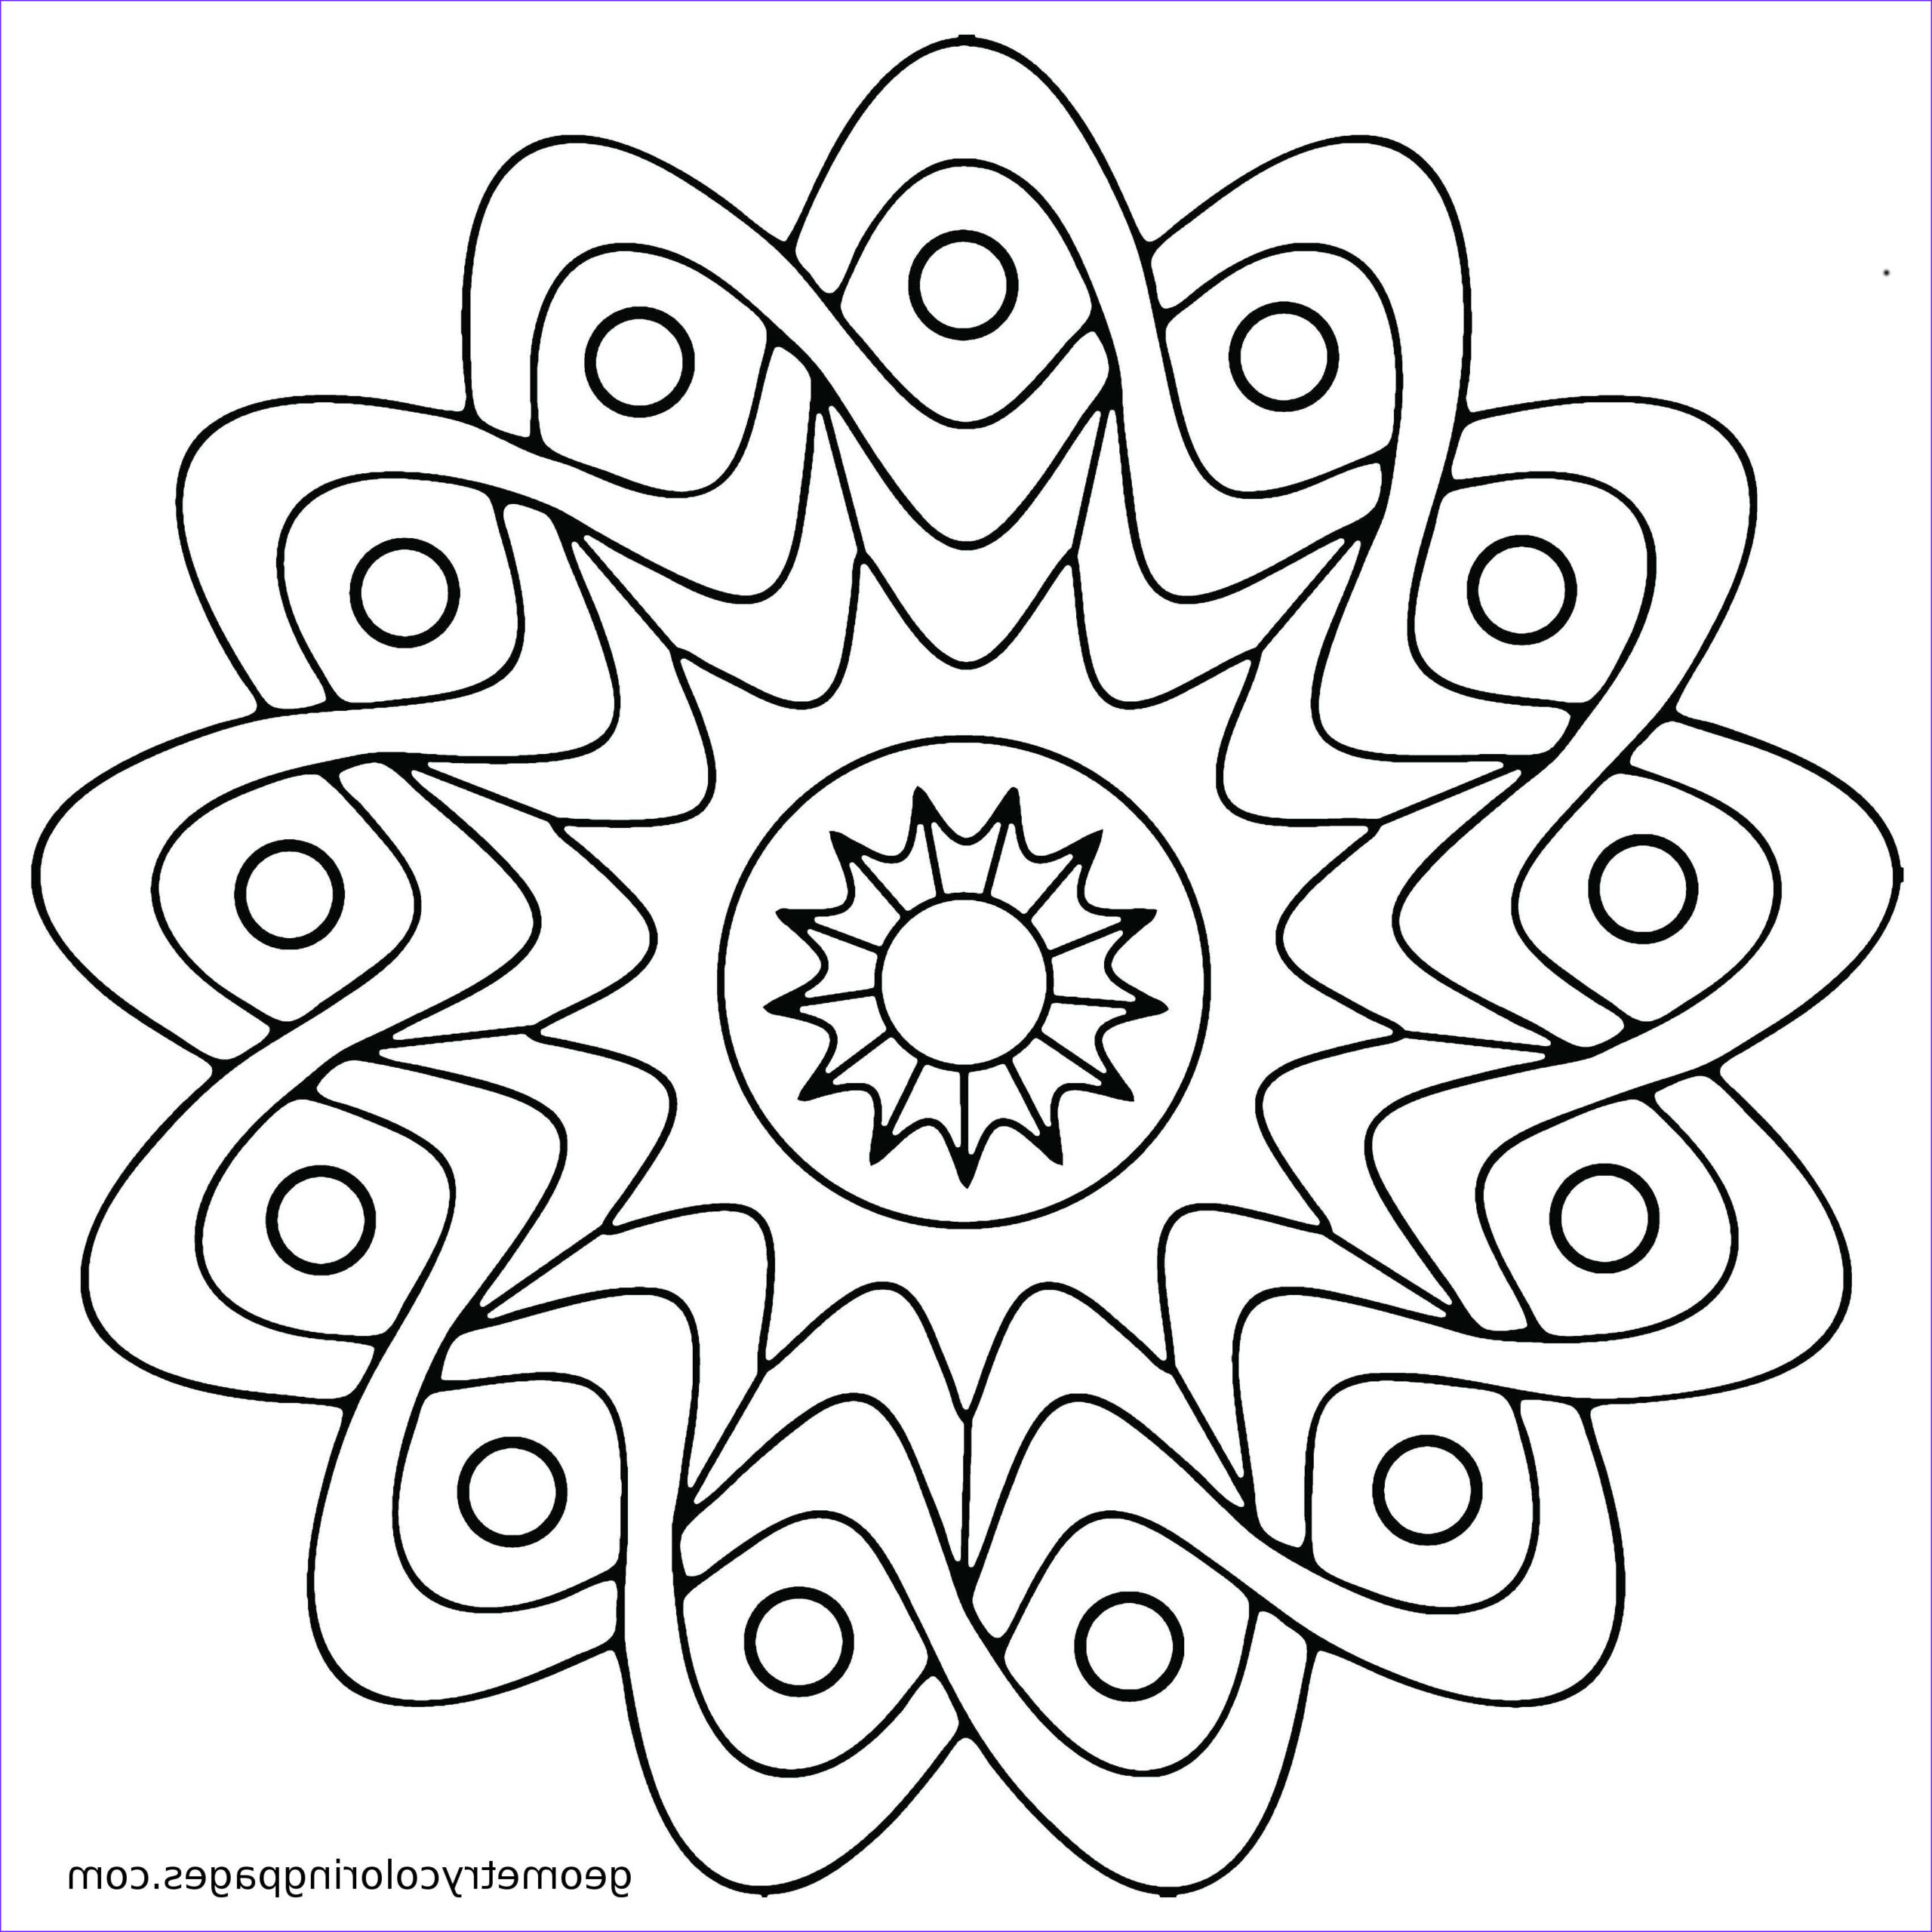 Adult Coloring Pages Easy Beautiful Gallery Mandala Coloring Pages Easy Mandala Coloring Pages